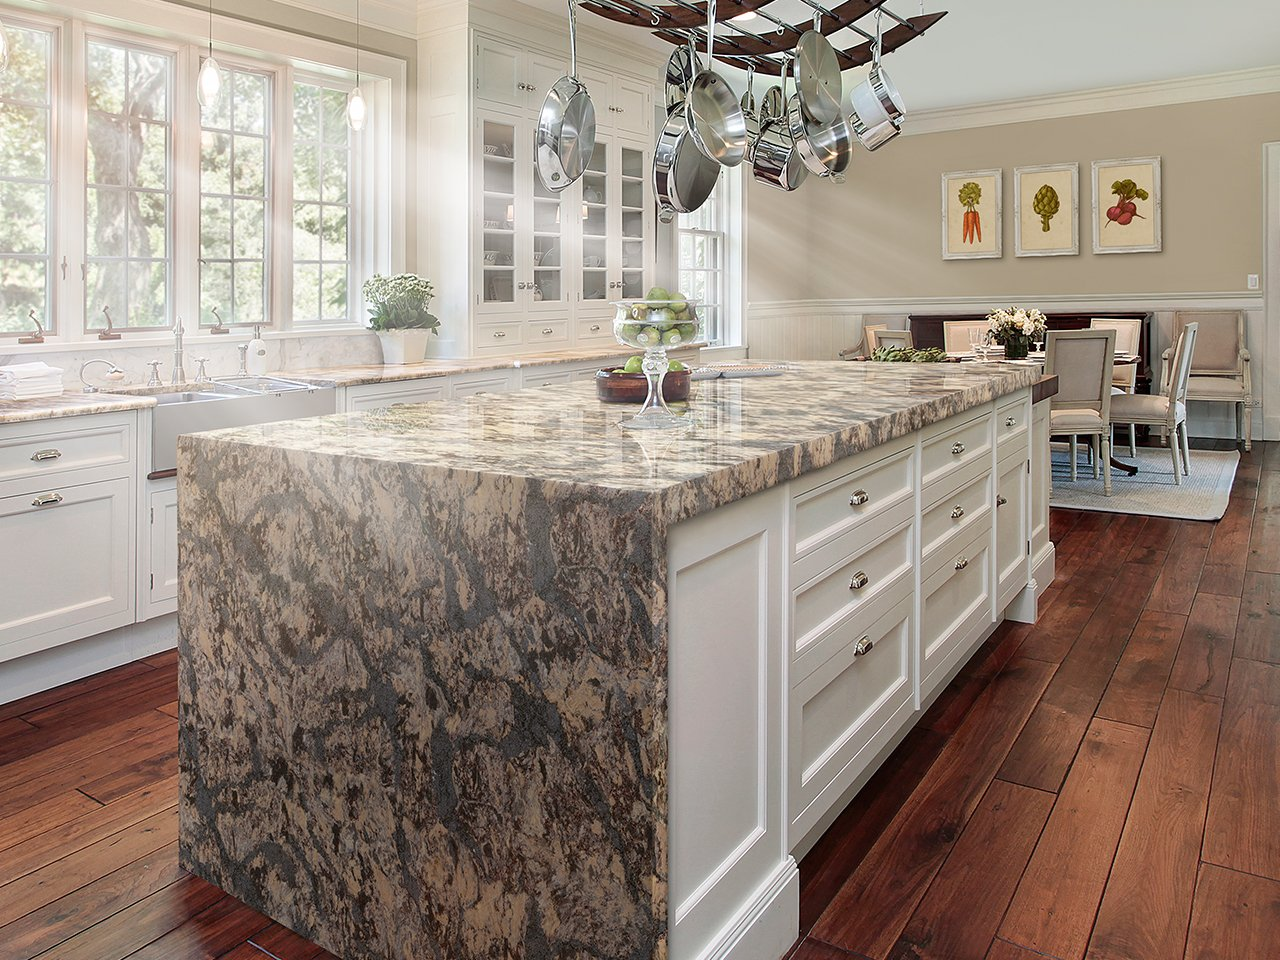 Removing Scratches From Quartz Countertops1 2 Jpg